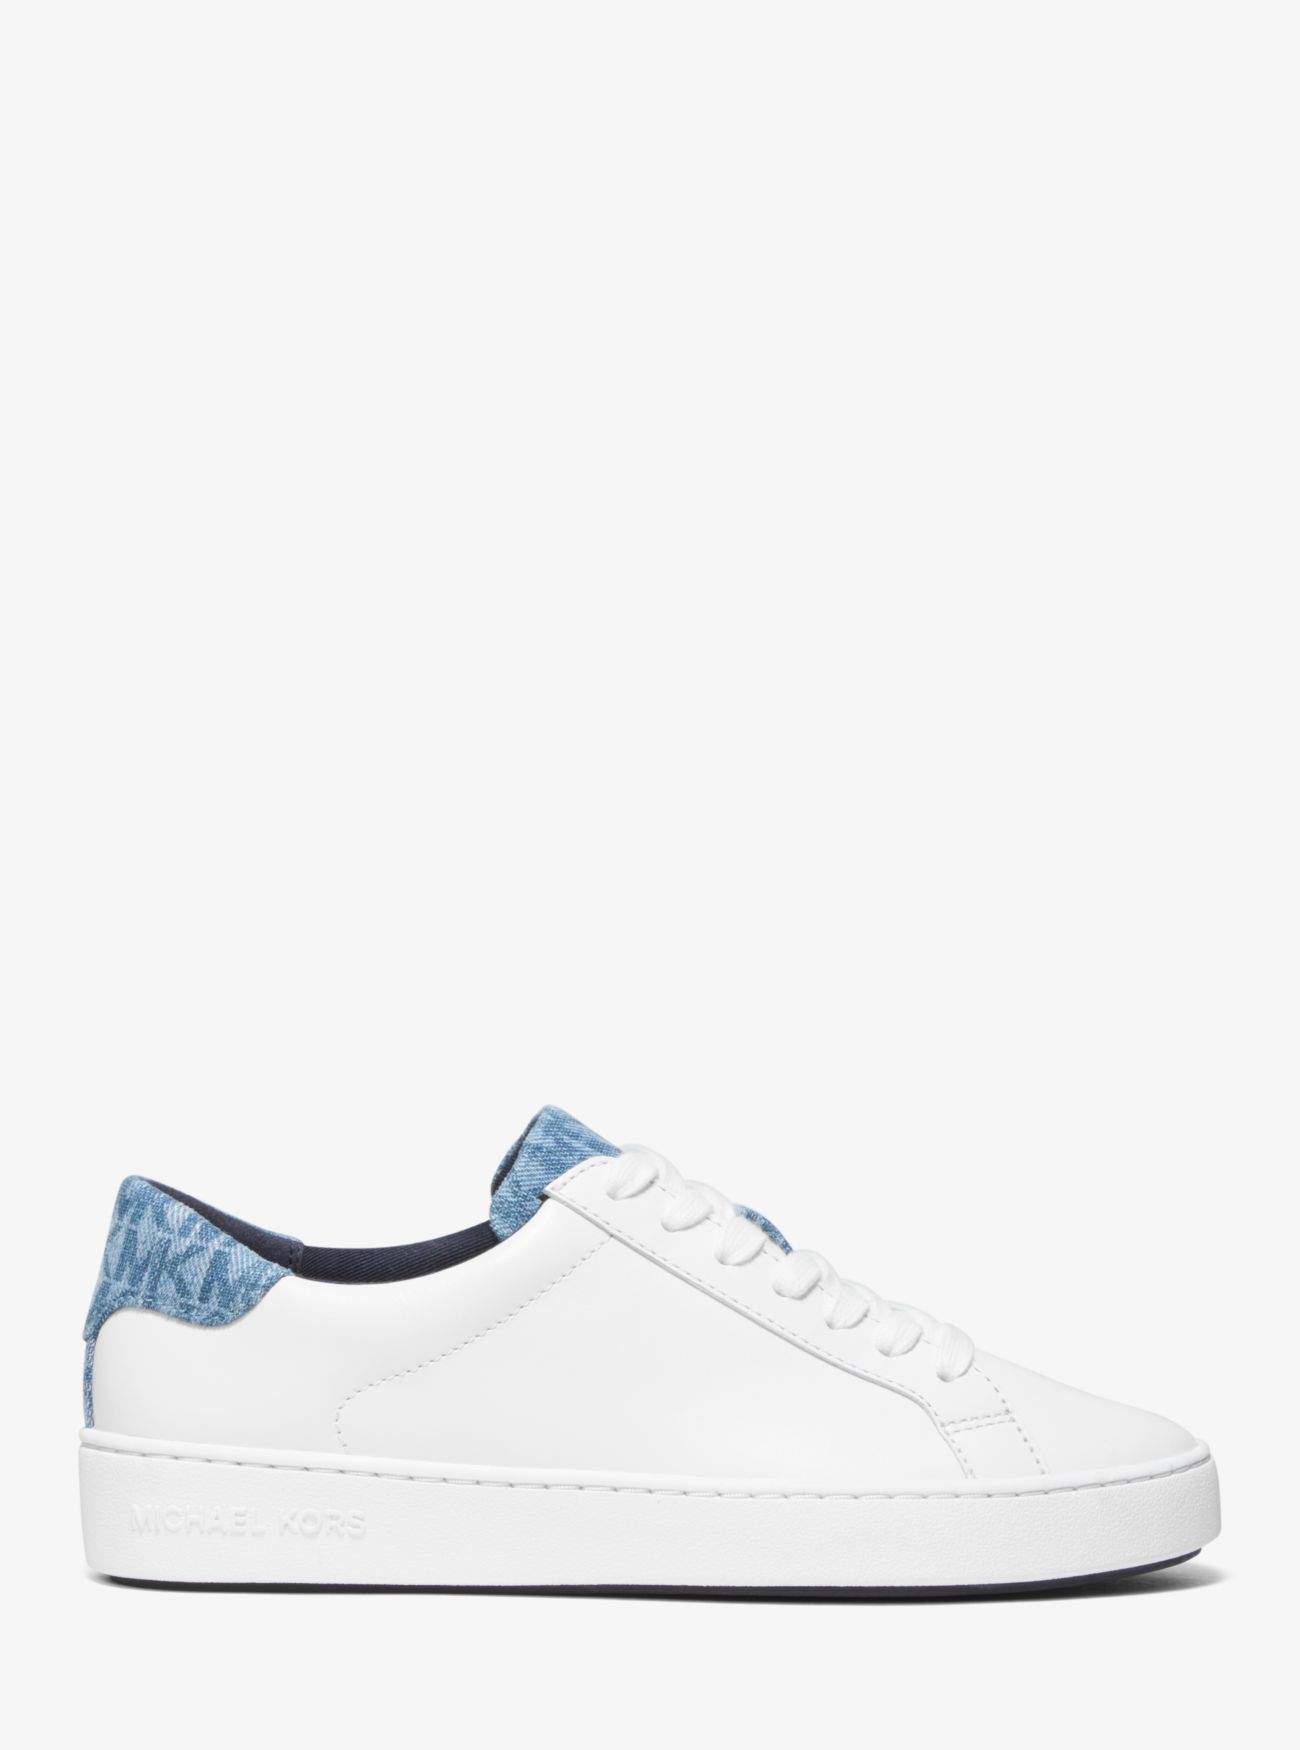 d7cc02bf650 Irving Leather and Logo Denim Sneaker Irving Leather and Logo Denim Sneaker  Irving Leather and Logo Denim Sneaker. MICHAEL Michael Kors